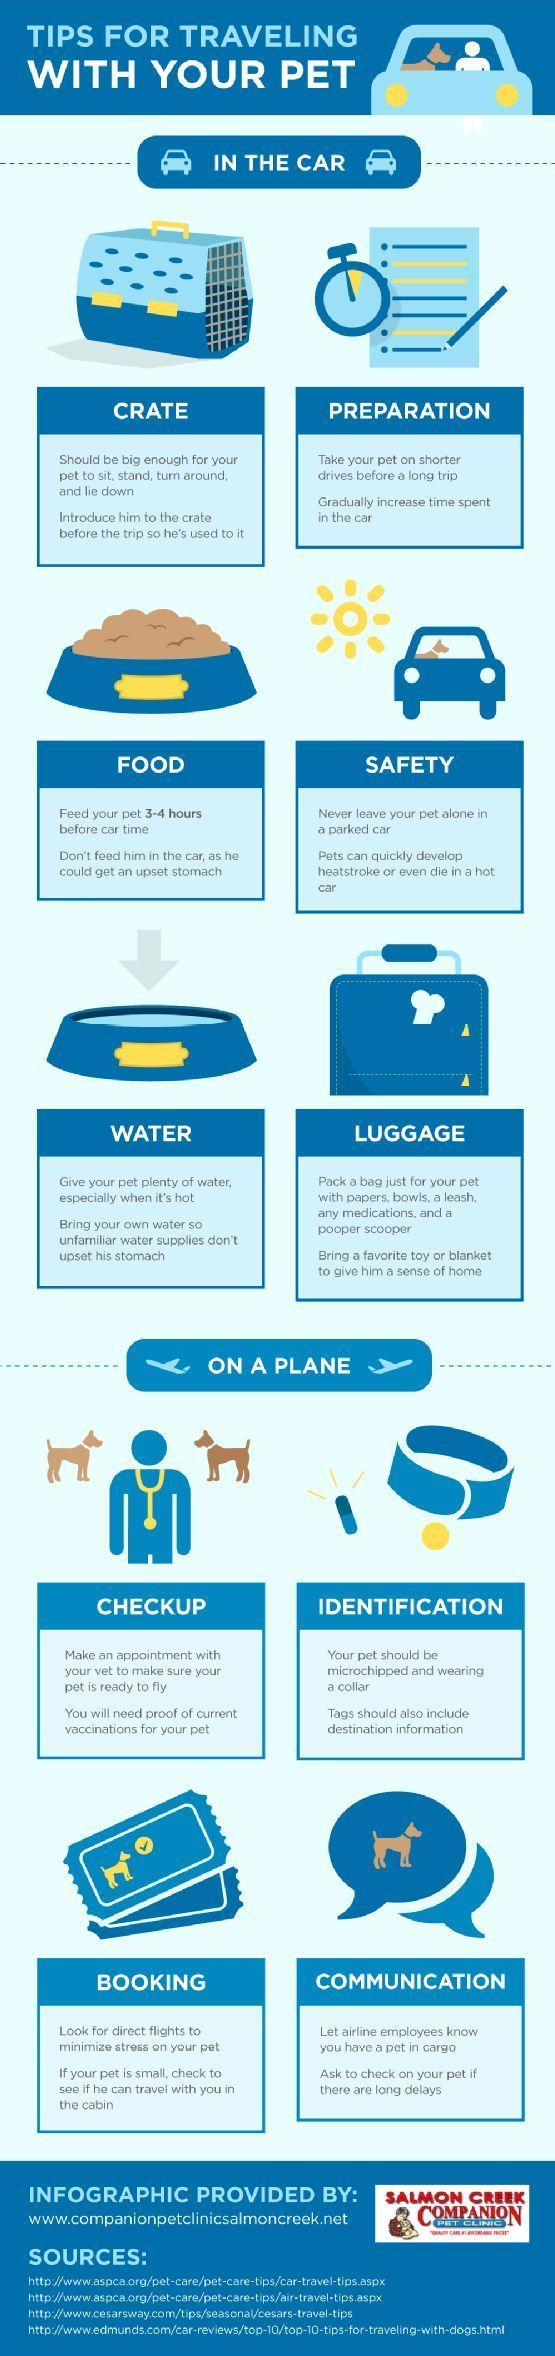 Tips for Traveling with Your Pet- here's what you need to know.